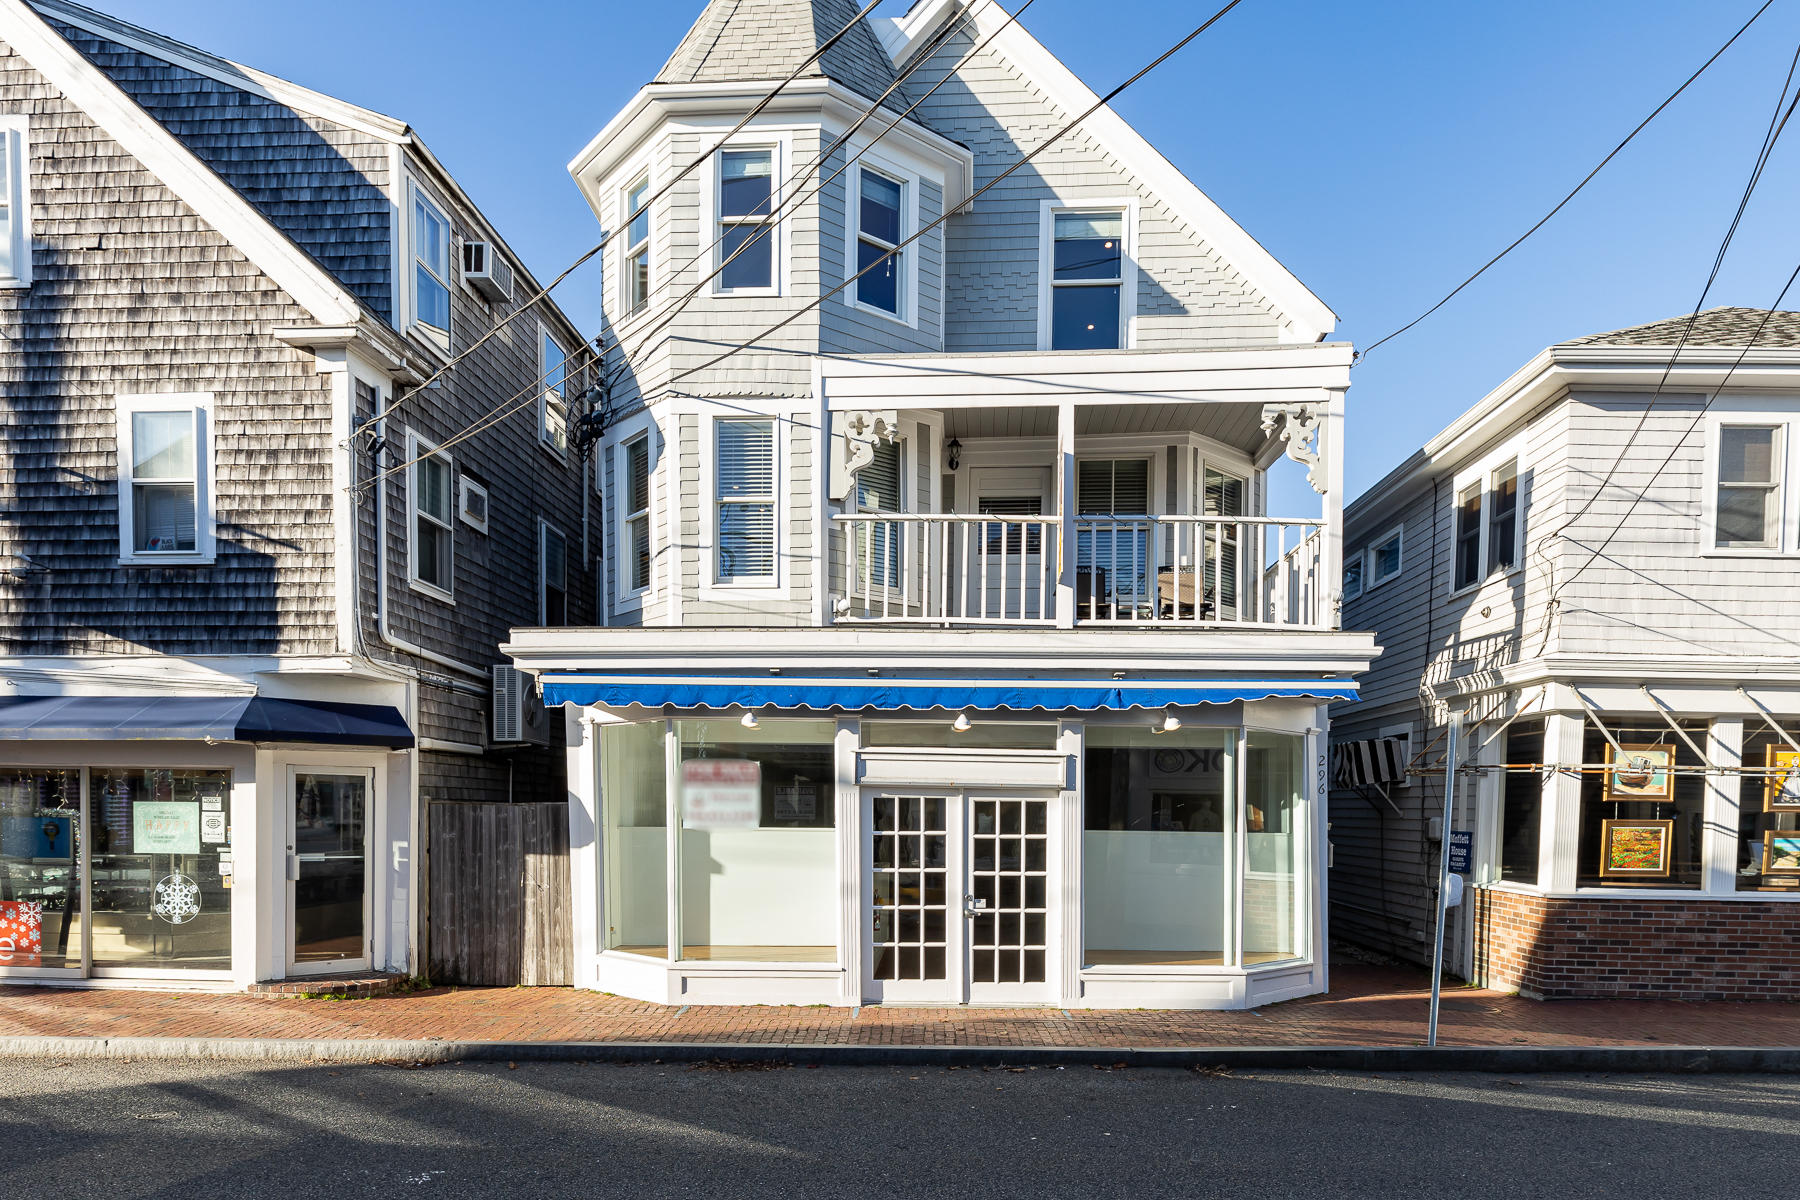 296 Commercial Street, Provincetown MA, 02657 details